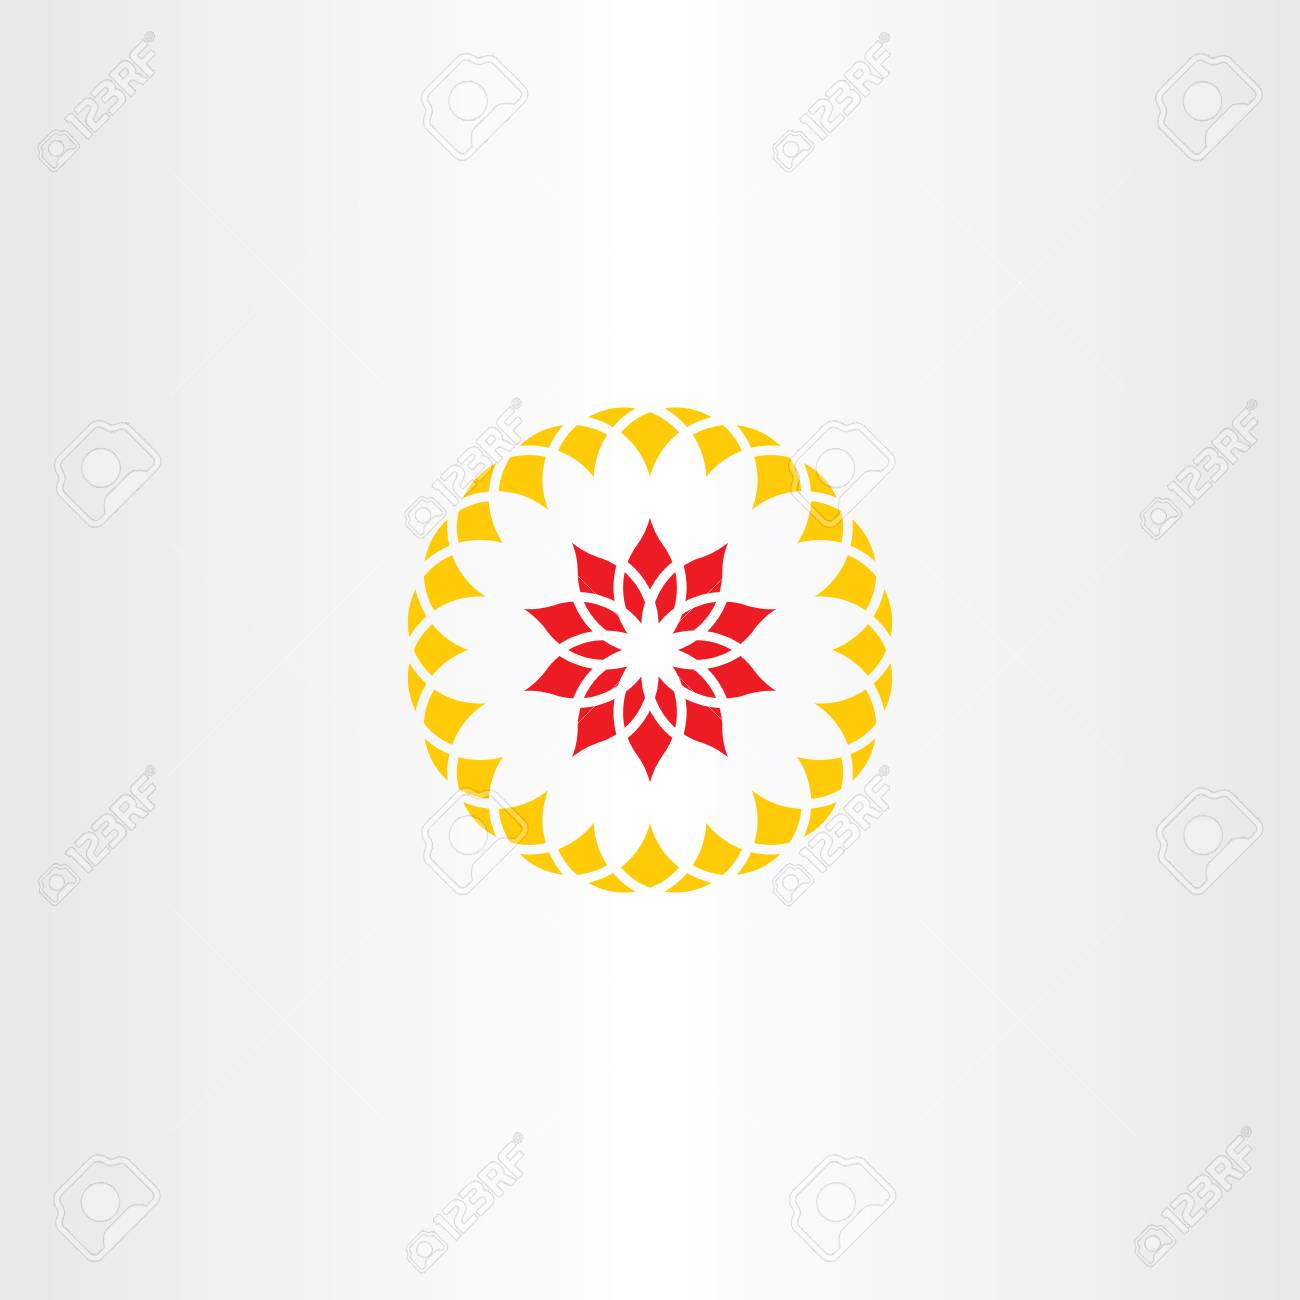 Abstract Red Yellow Flower Sign Symbol Logo Royalty Free Cliparts